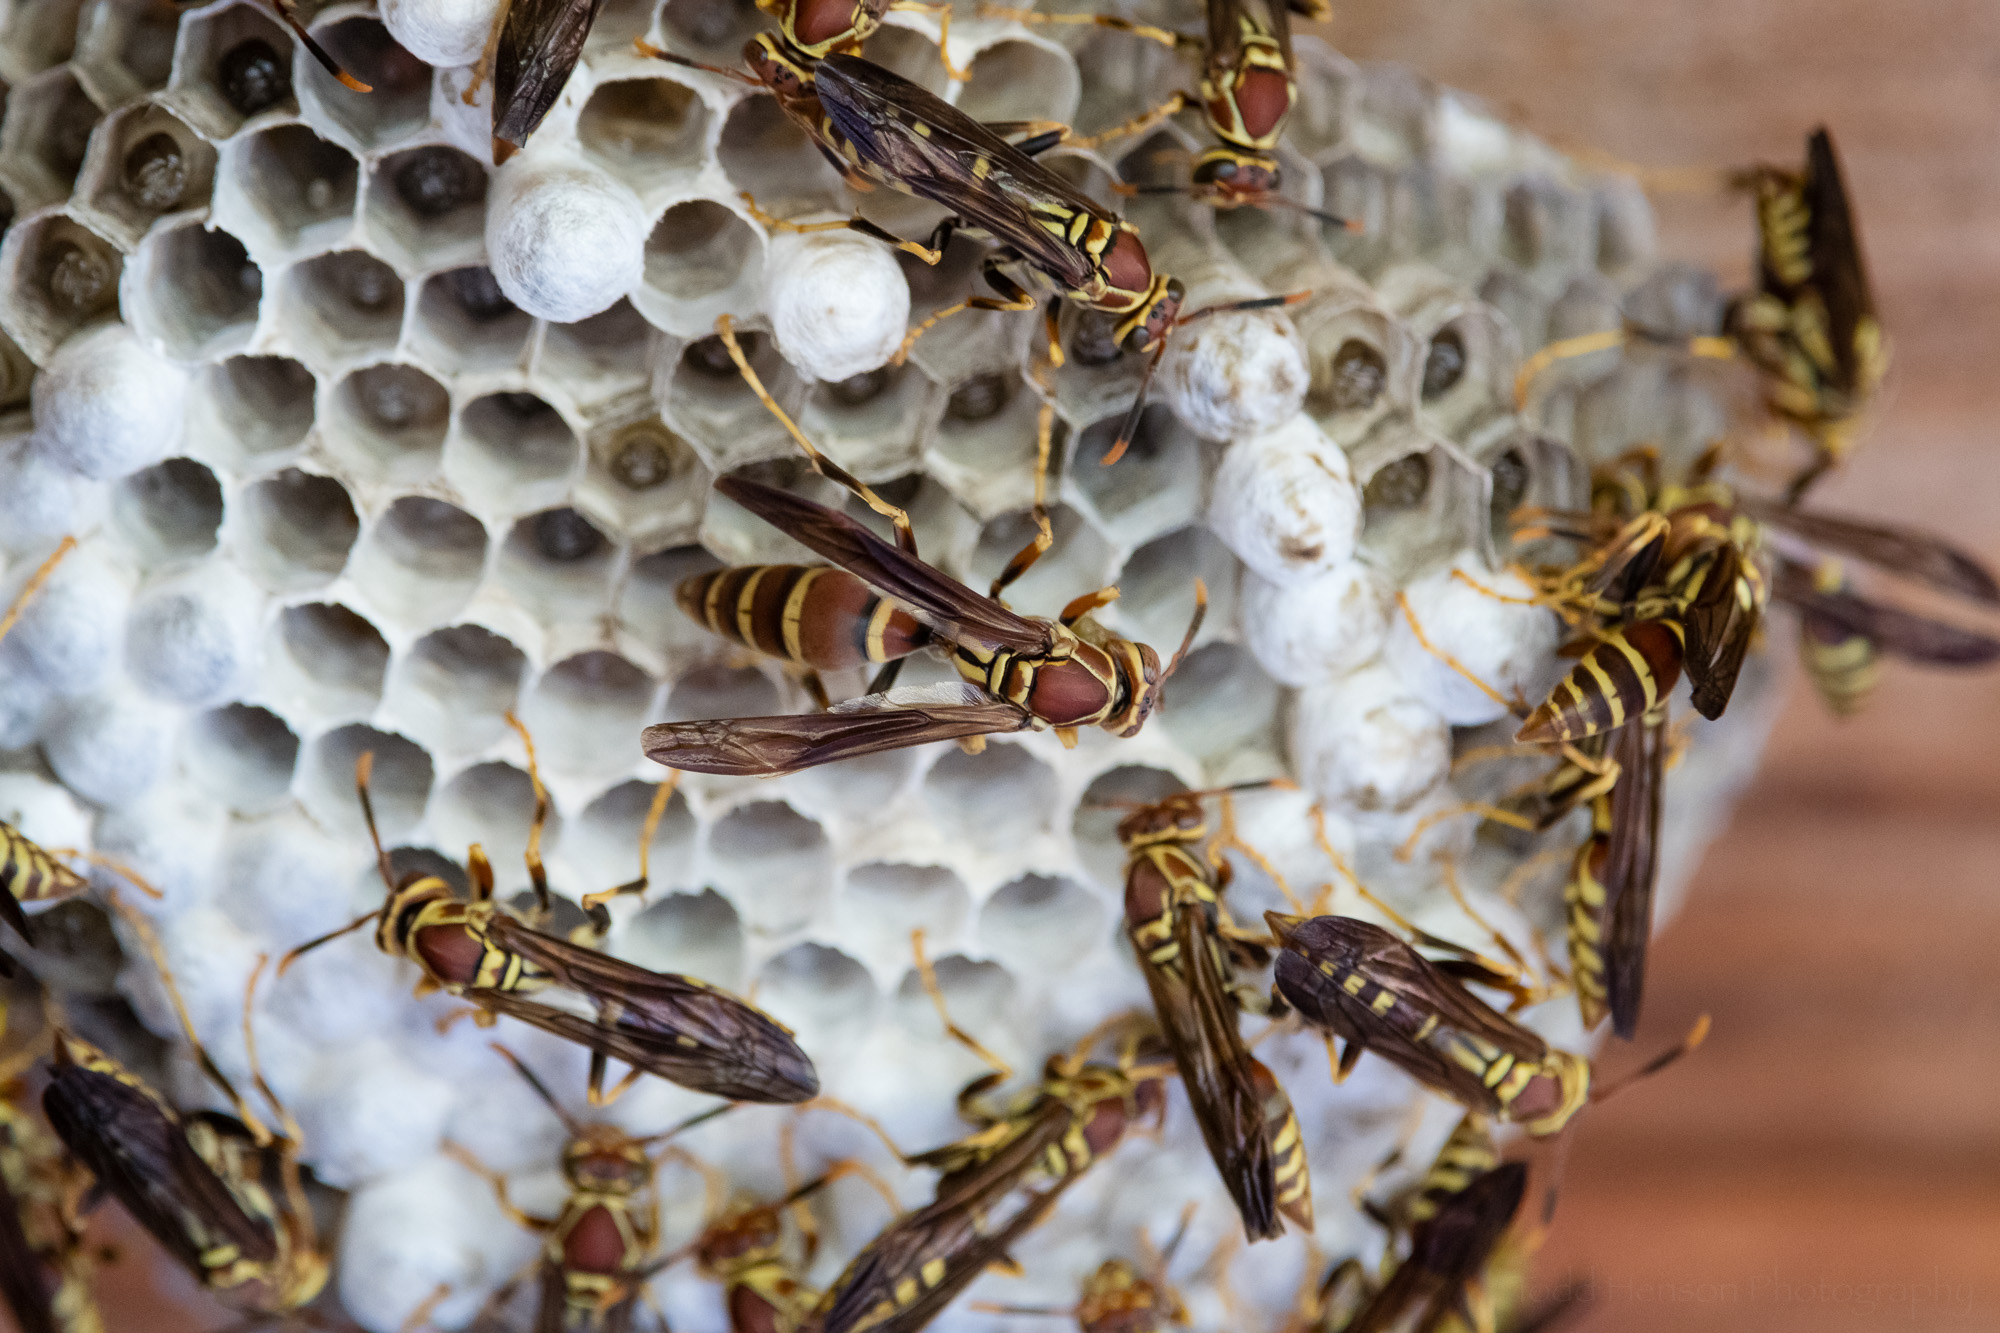 A closer look at paper wasps on their nest.